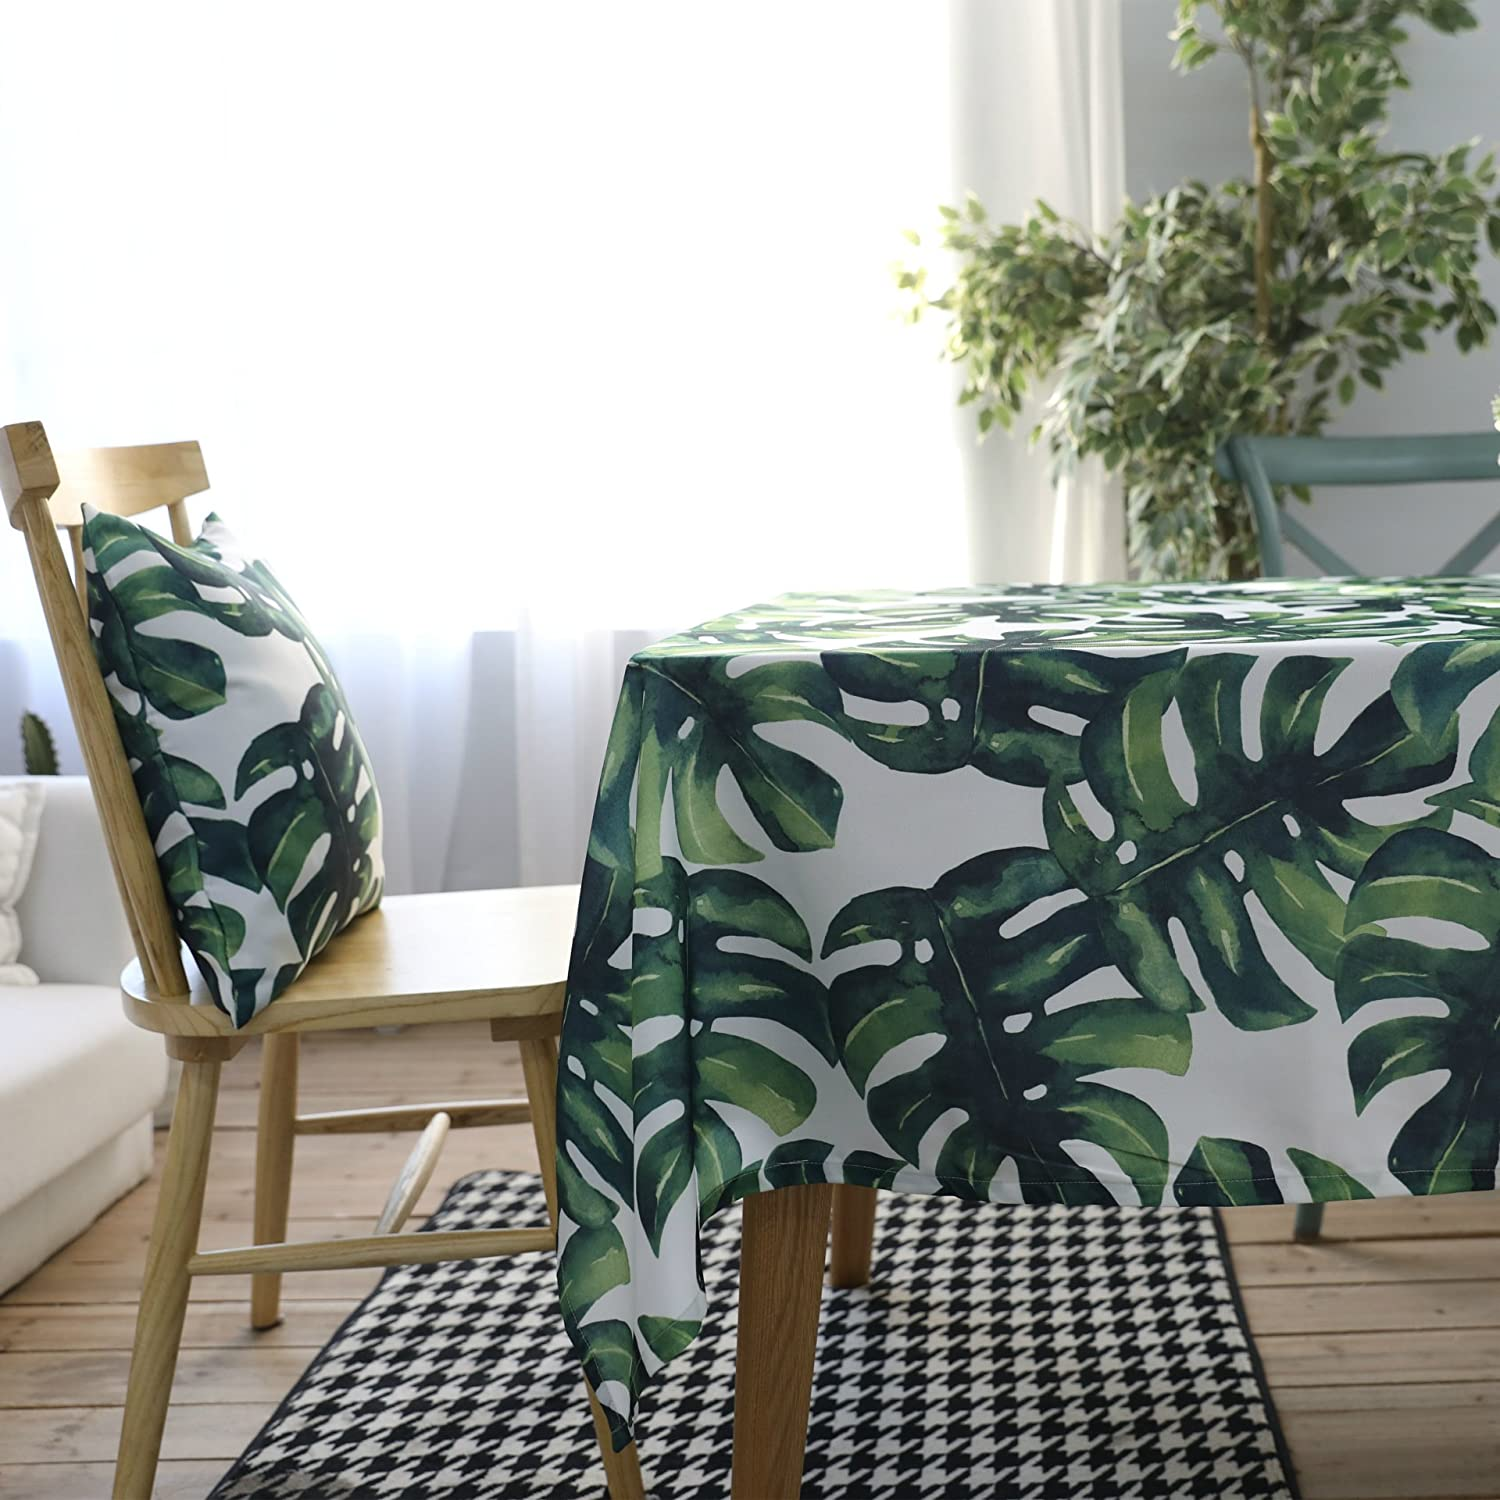 Drizzle Table Cloth Monstera Leaf Plant Palm Tree Rectangular Square Folding Table Cover Waterproof Polyester Cotton Country Garden for Kitchen Furniture (23 * 23in/60 * 60cm)